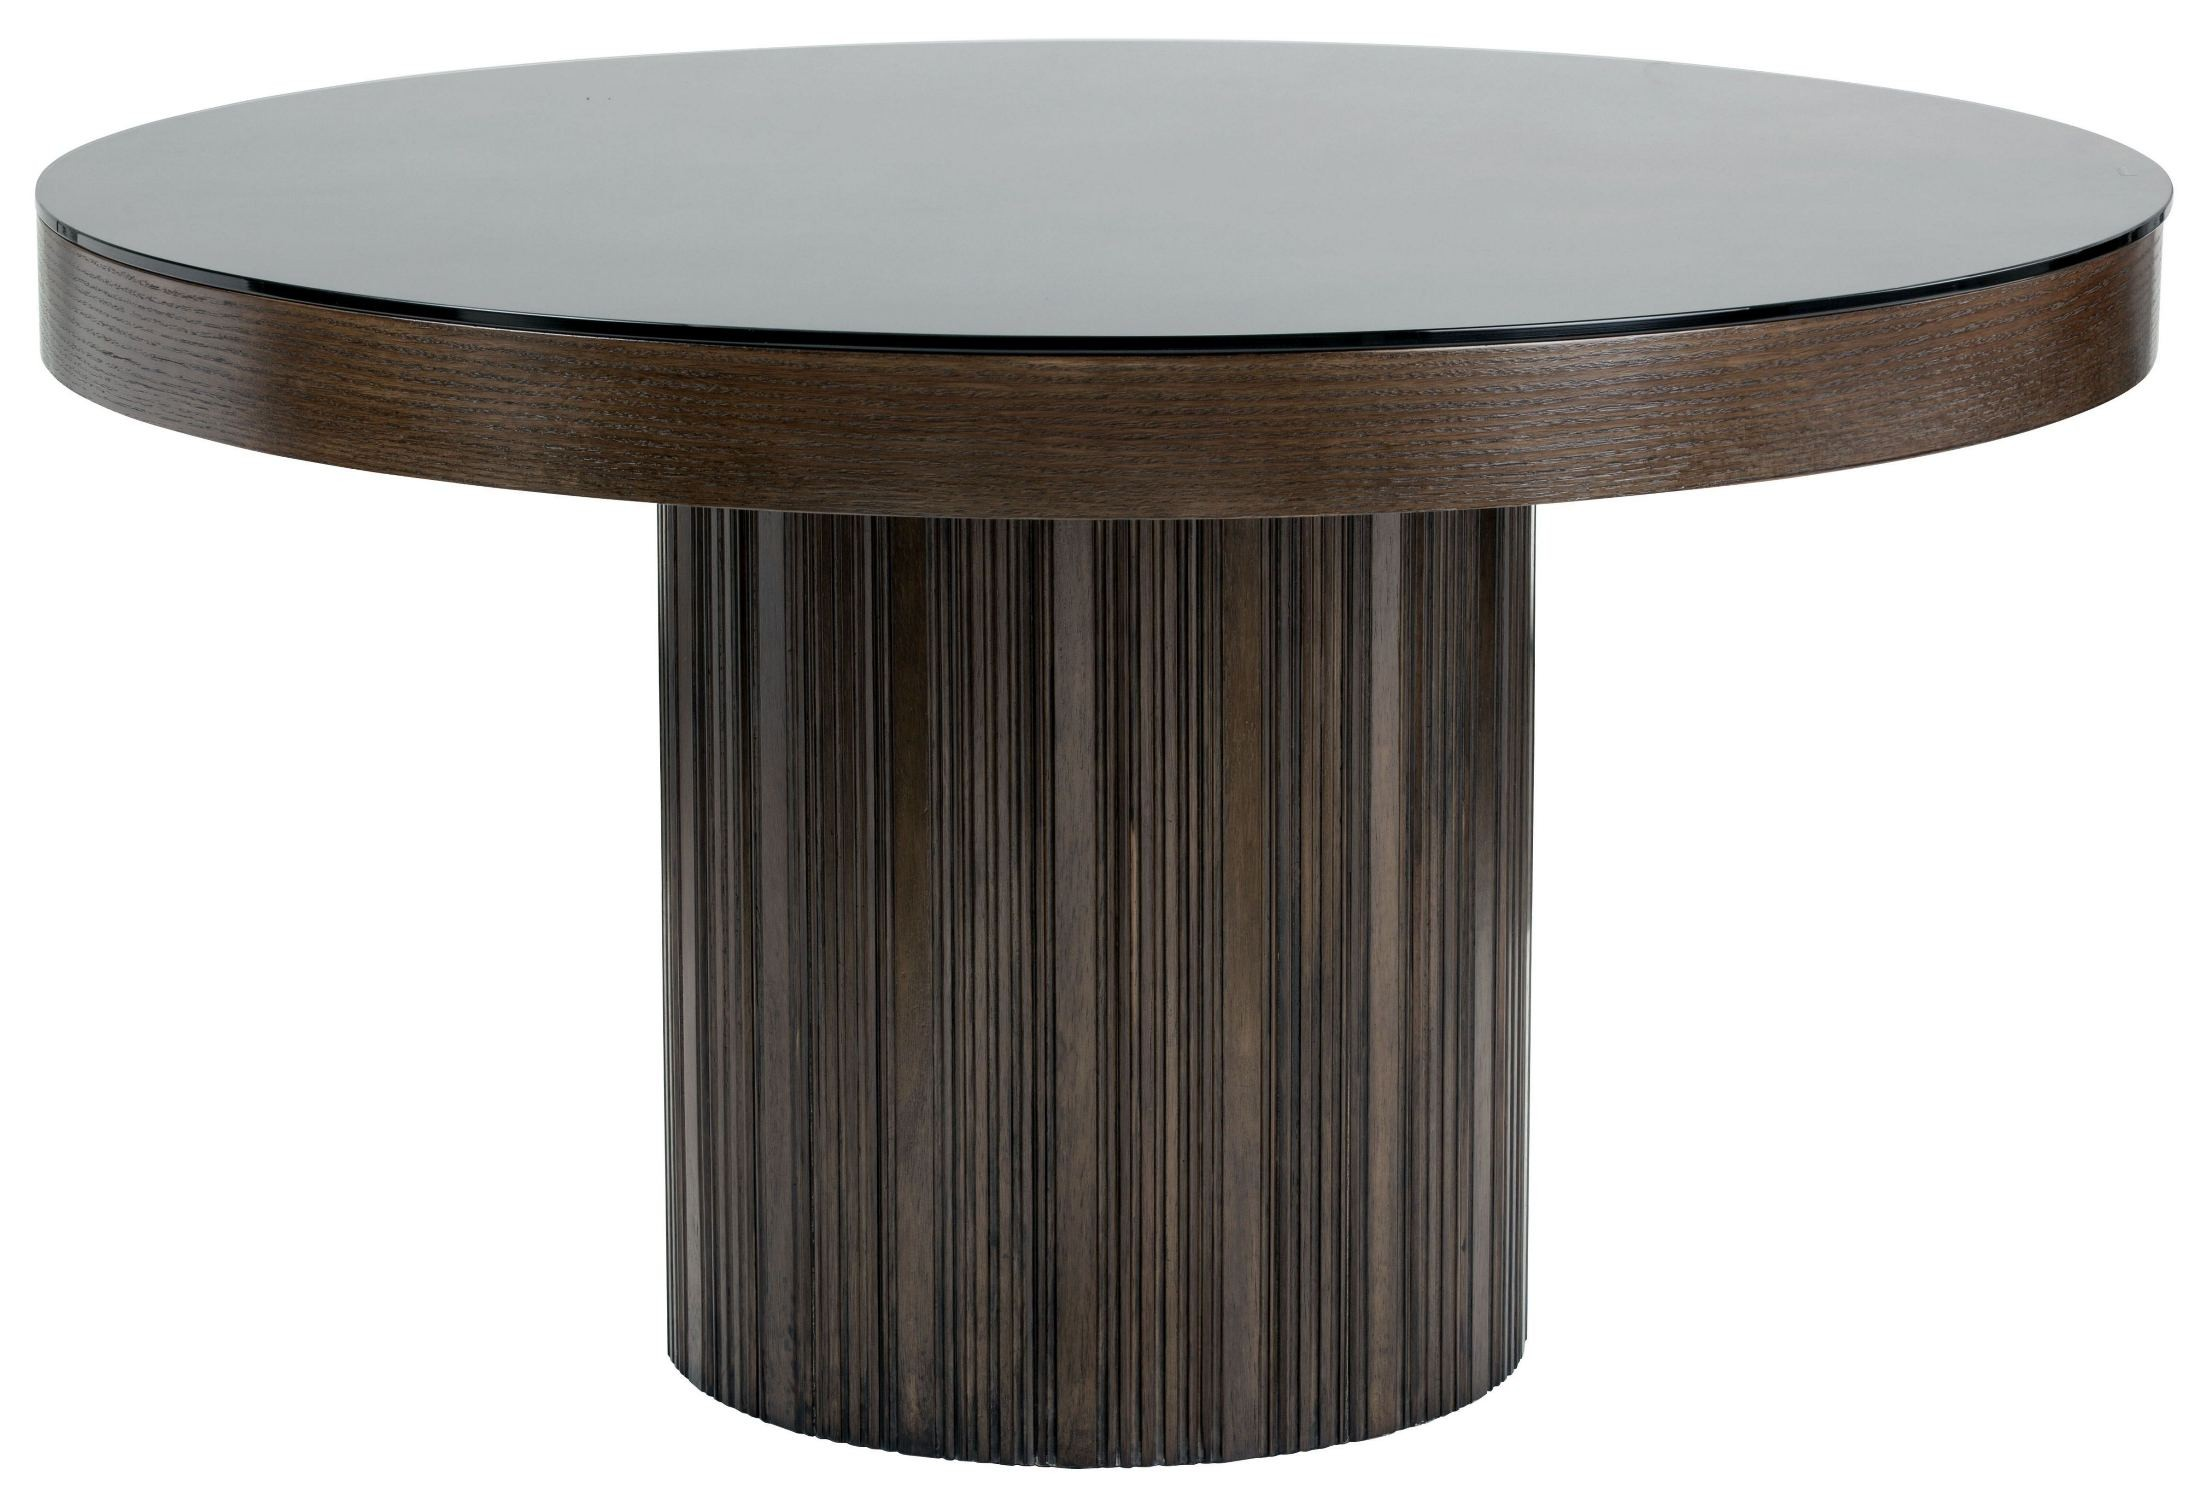 Round Glass Dining Table Jakarta Round Black Glass Top Dining Table From Sunpan